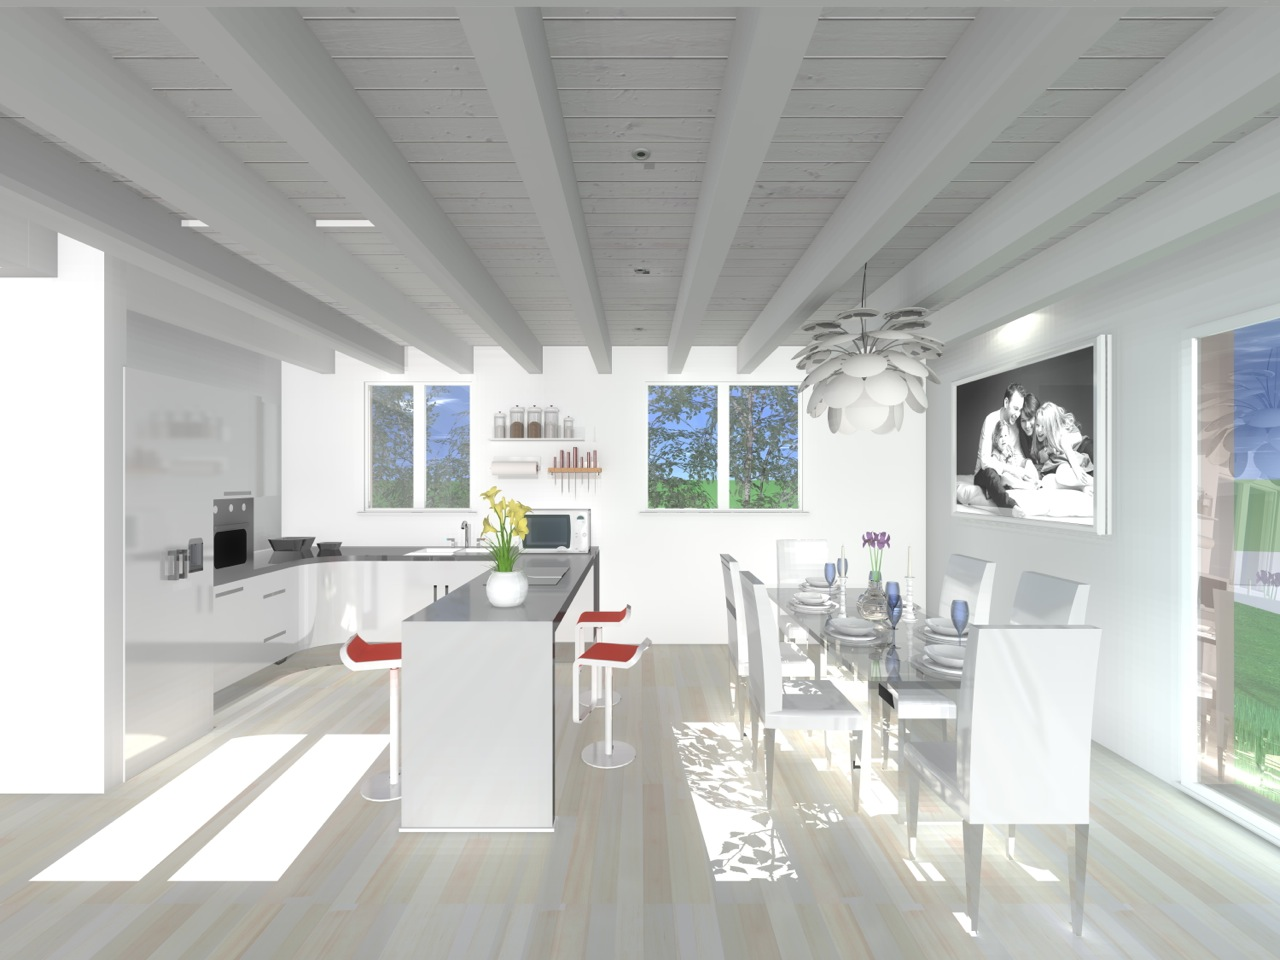 Detached House For Sale in Fribourg - 5 Photos